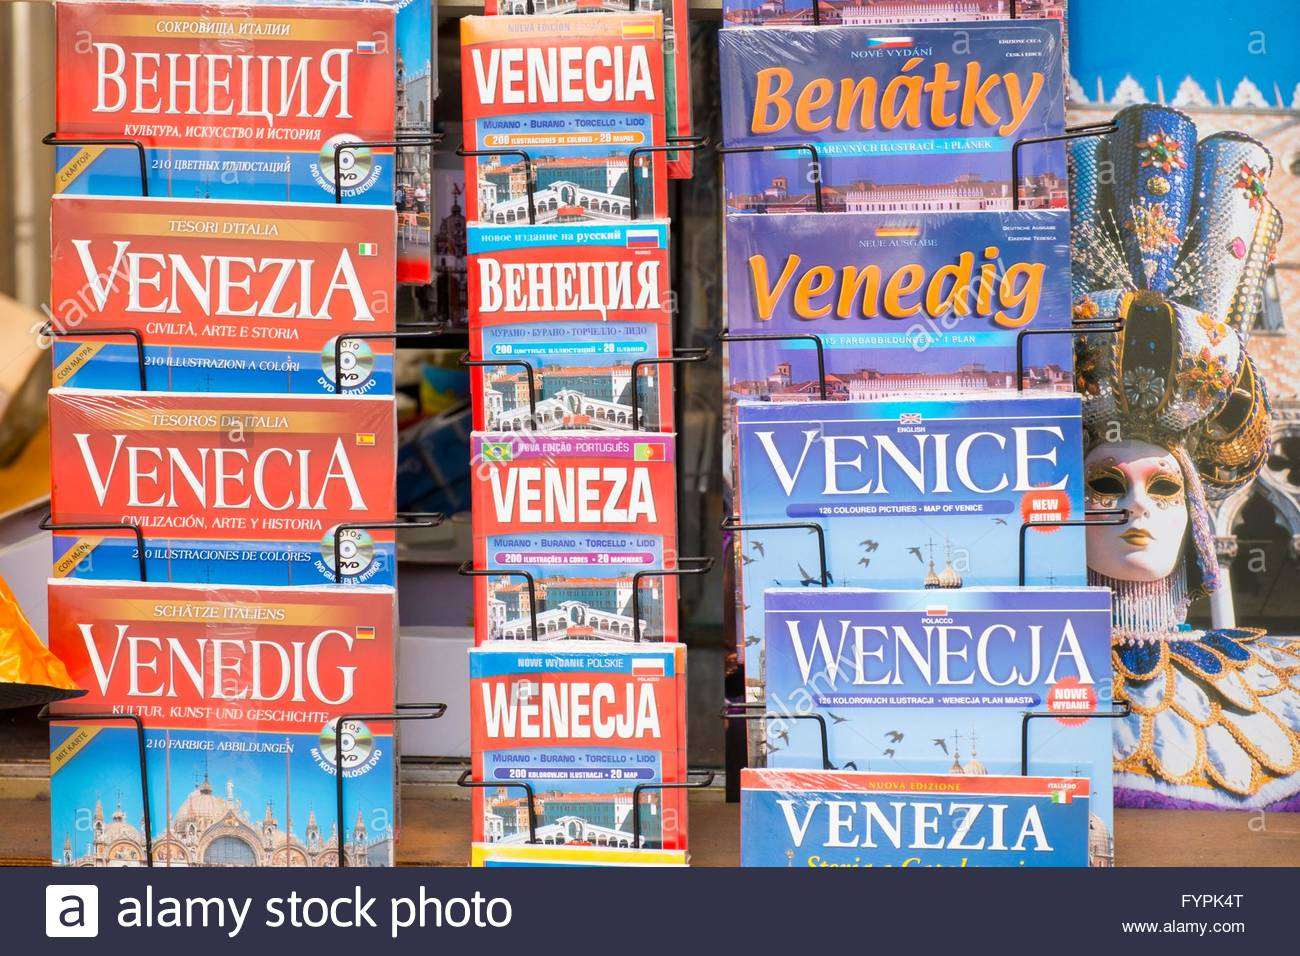 Venetian maps and tourist guides,  Venice, Italy, April - Stock Image